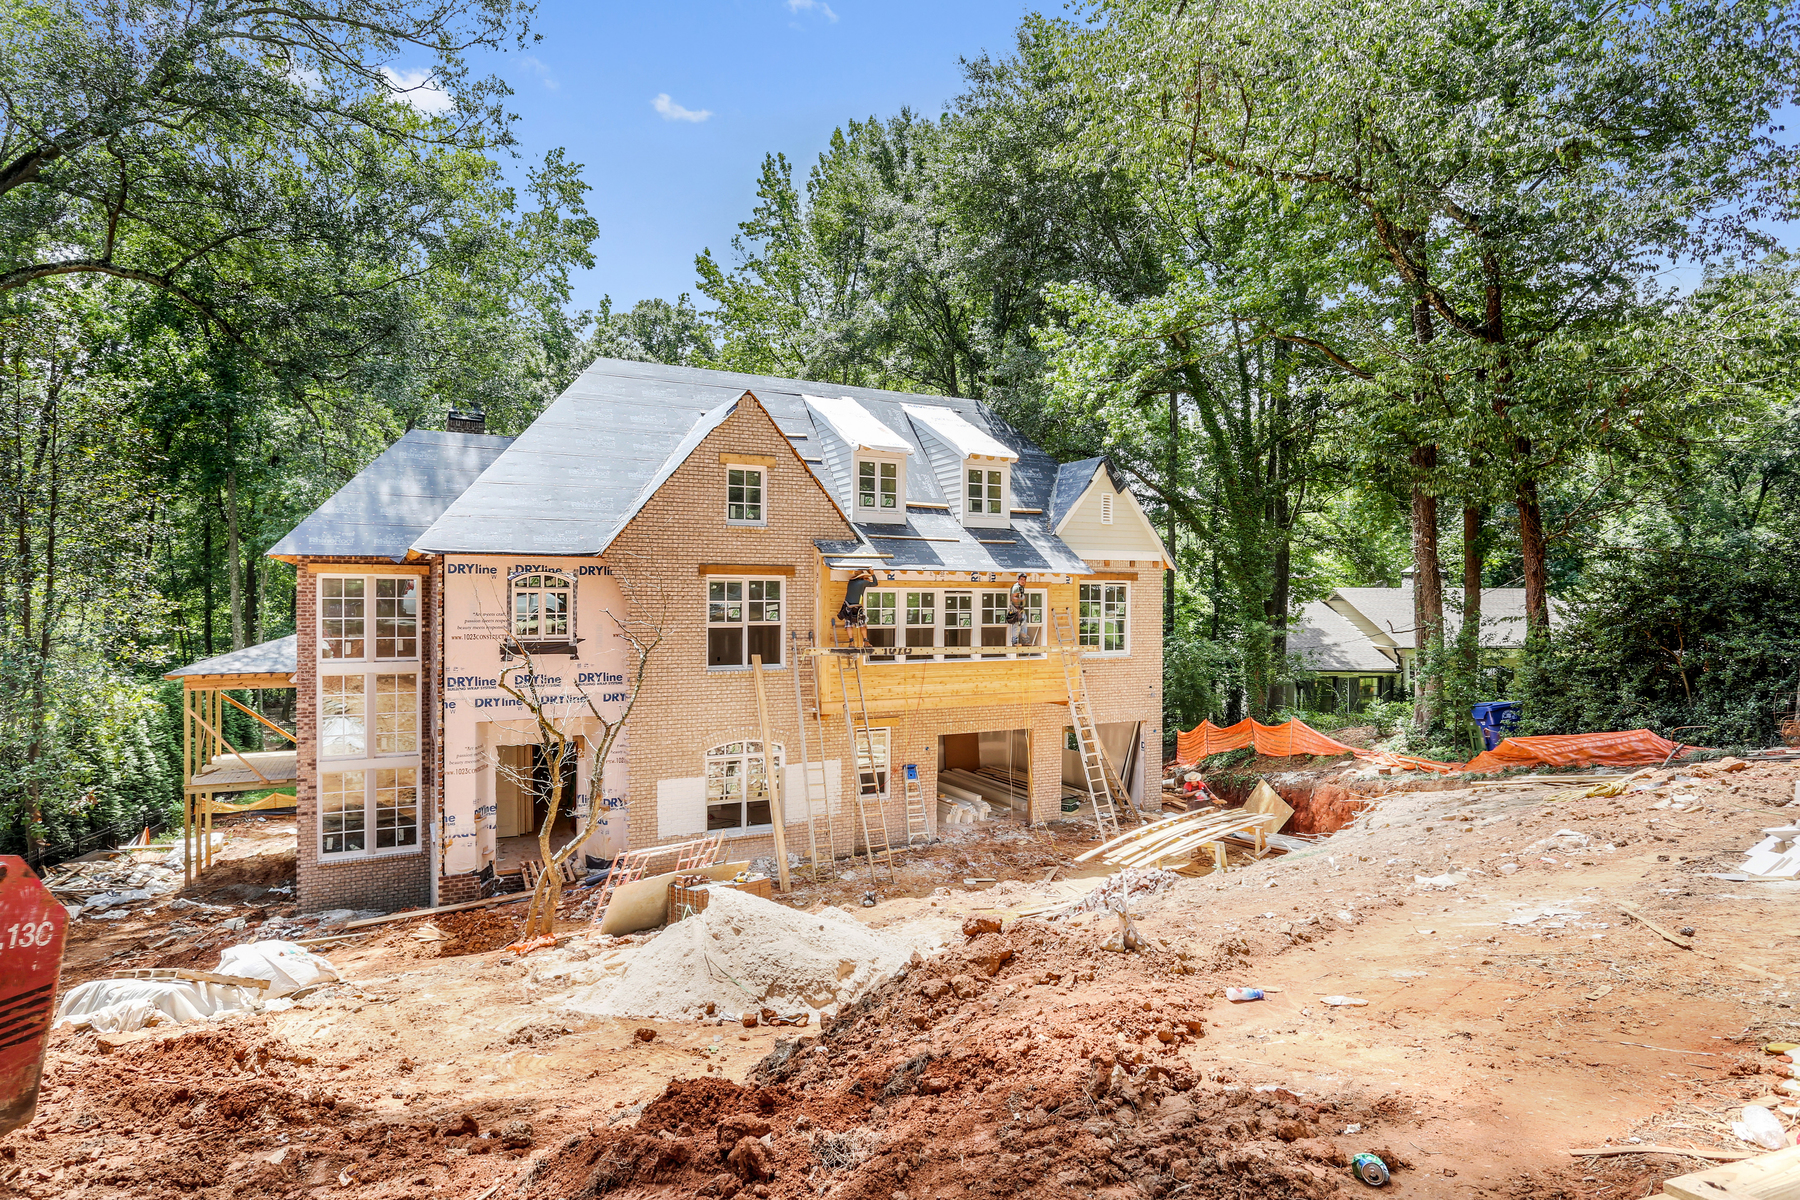 단독 가정 주택 용 매매 에 Beautiful New Construction In Chastain Park 496 Broadland Road NW Atlanta, 조지아 30342 미국